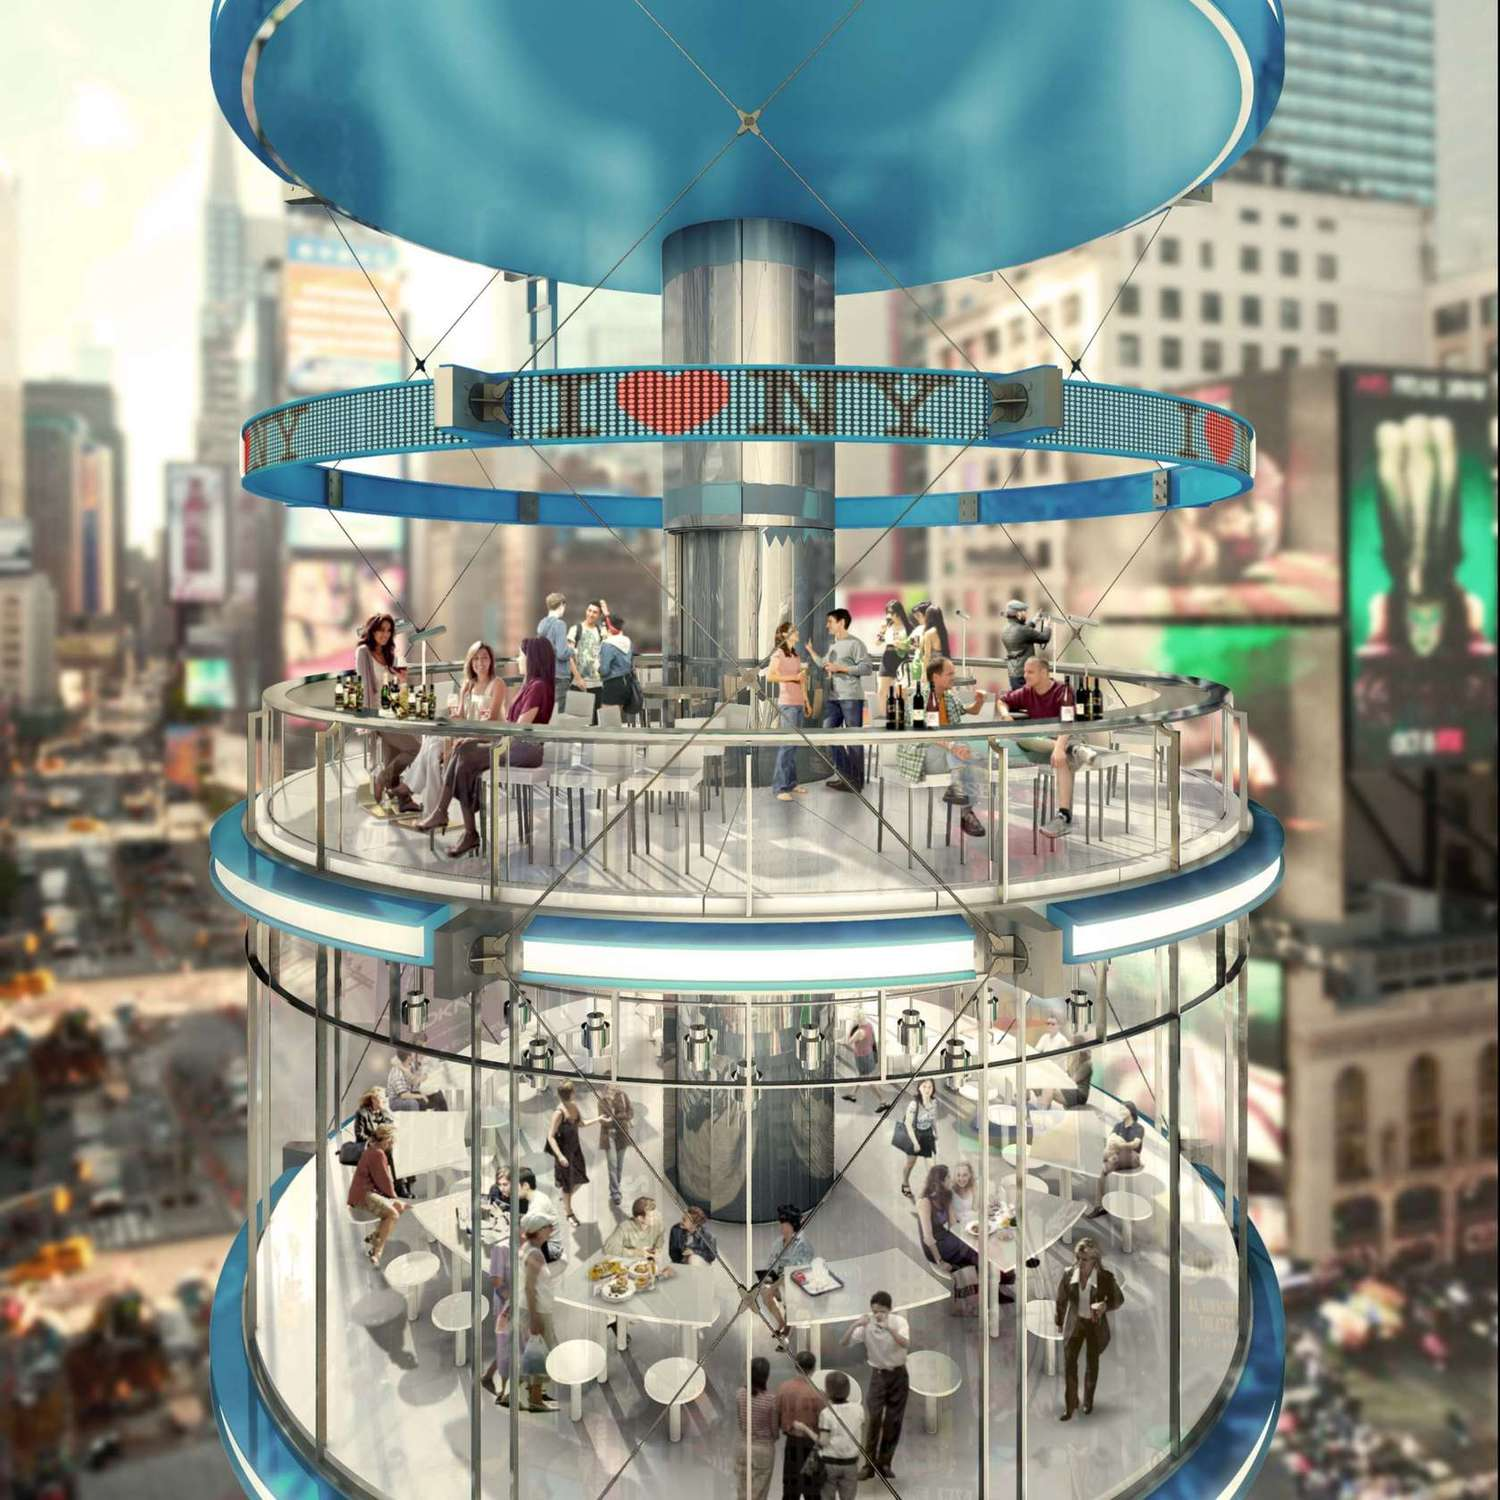 The open roof design allows air to circulate throughout, while the glass walls provide 360-degree views. Each pod is 40 feet in diameter and 180 feet tall.